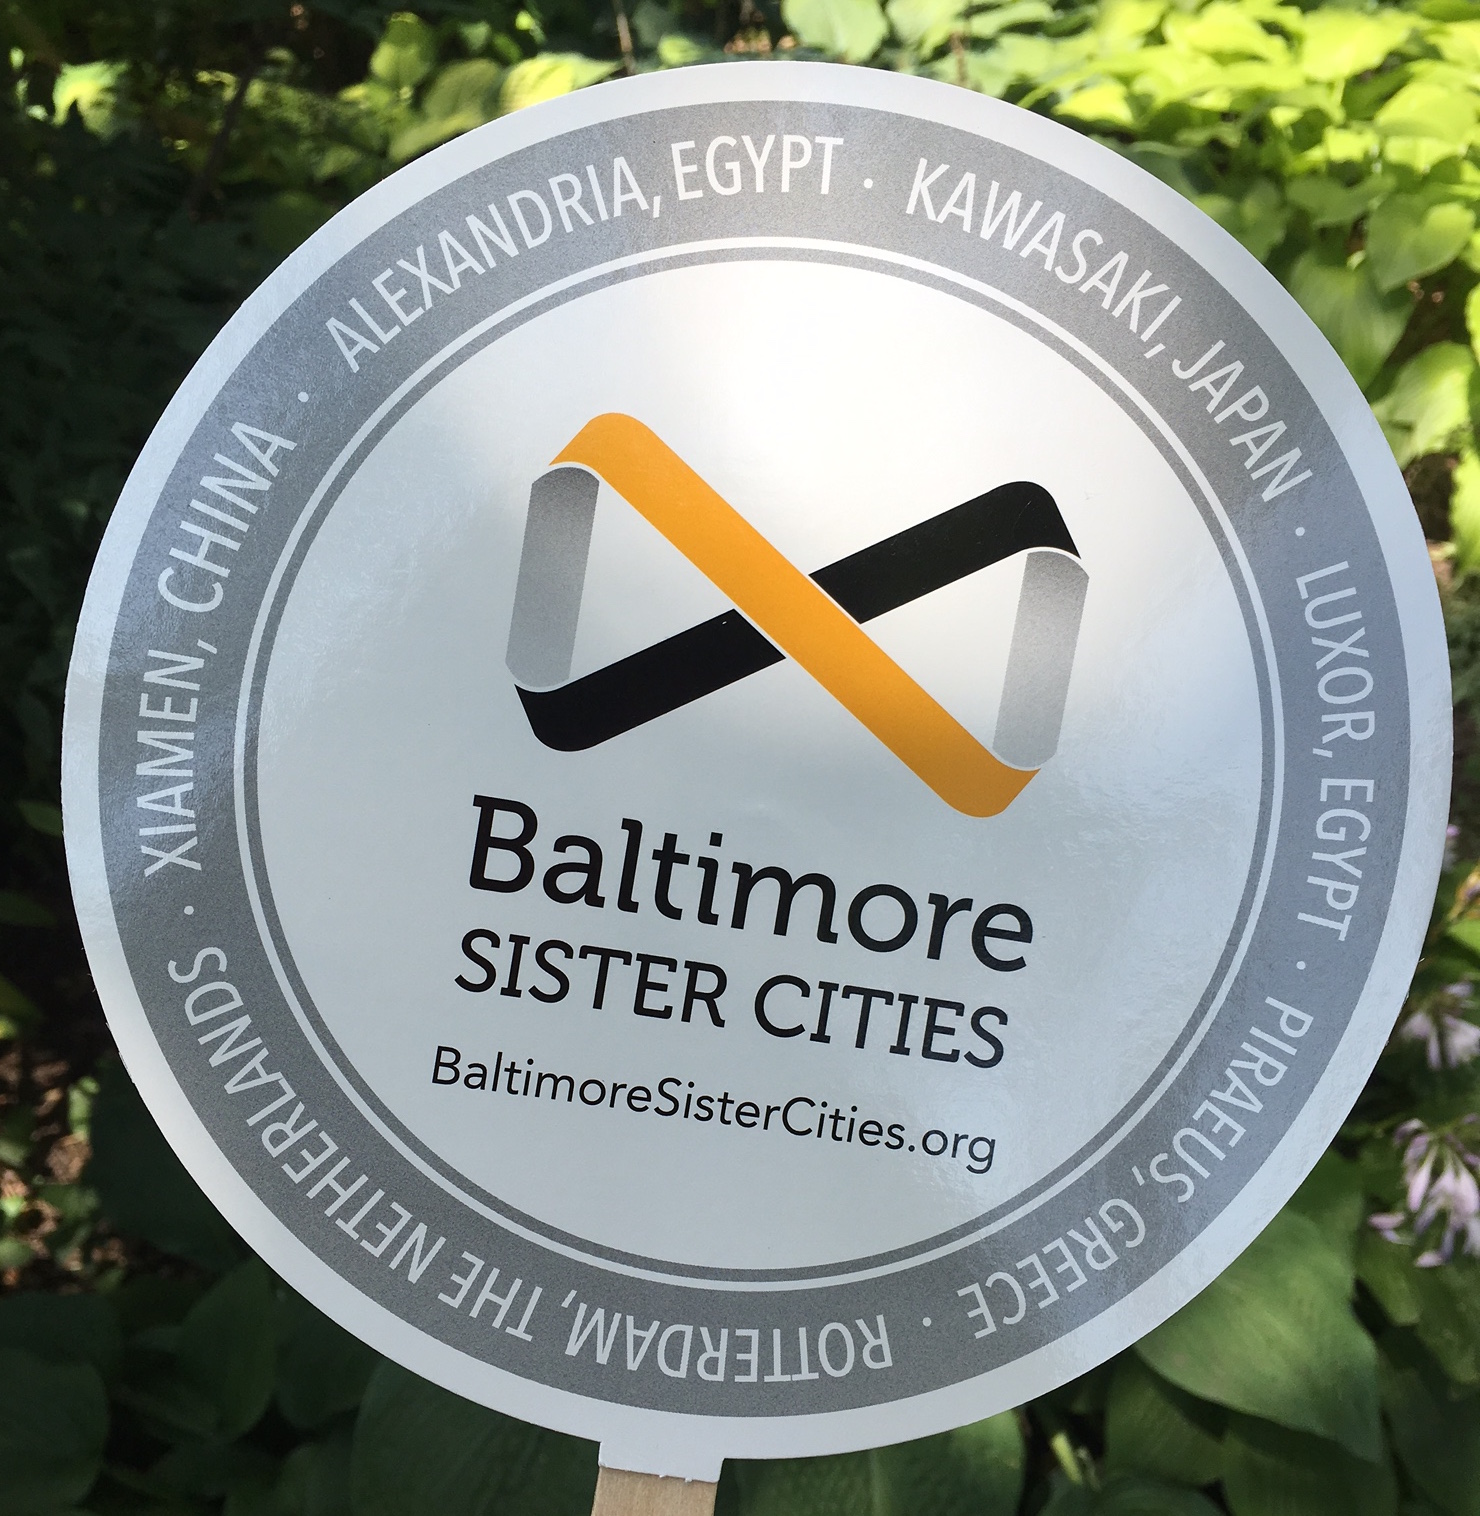 Baltimore Sister Cities paper fan for Artscape 2017